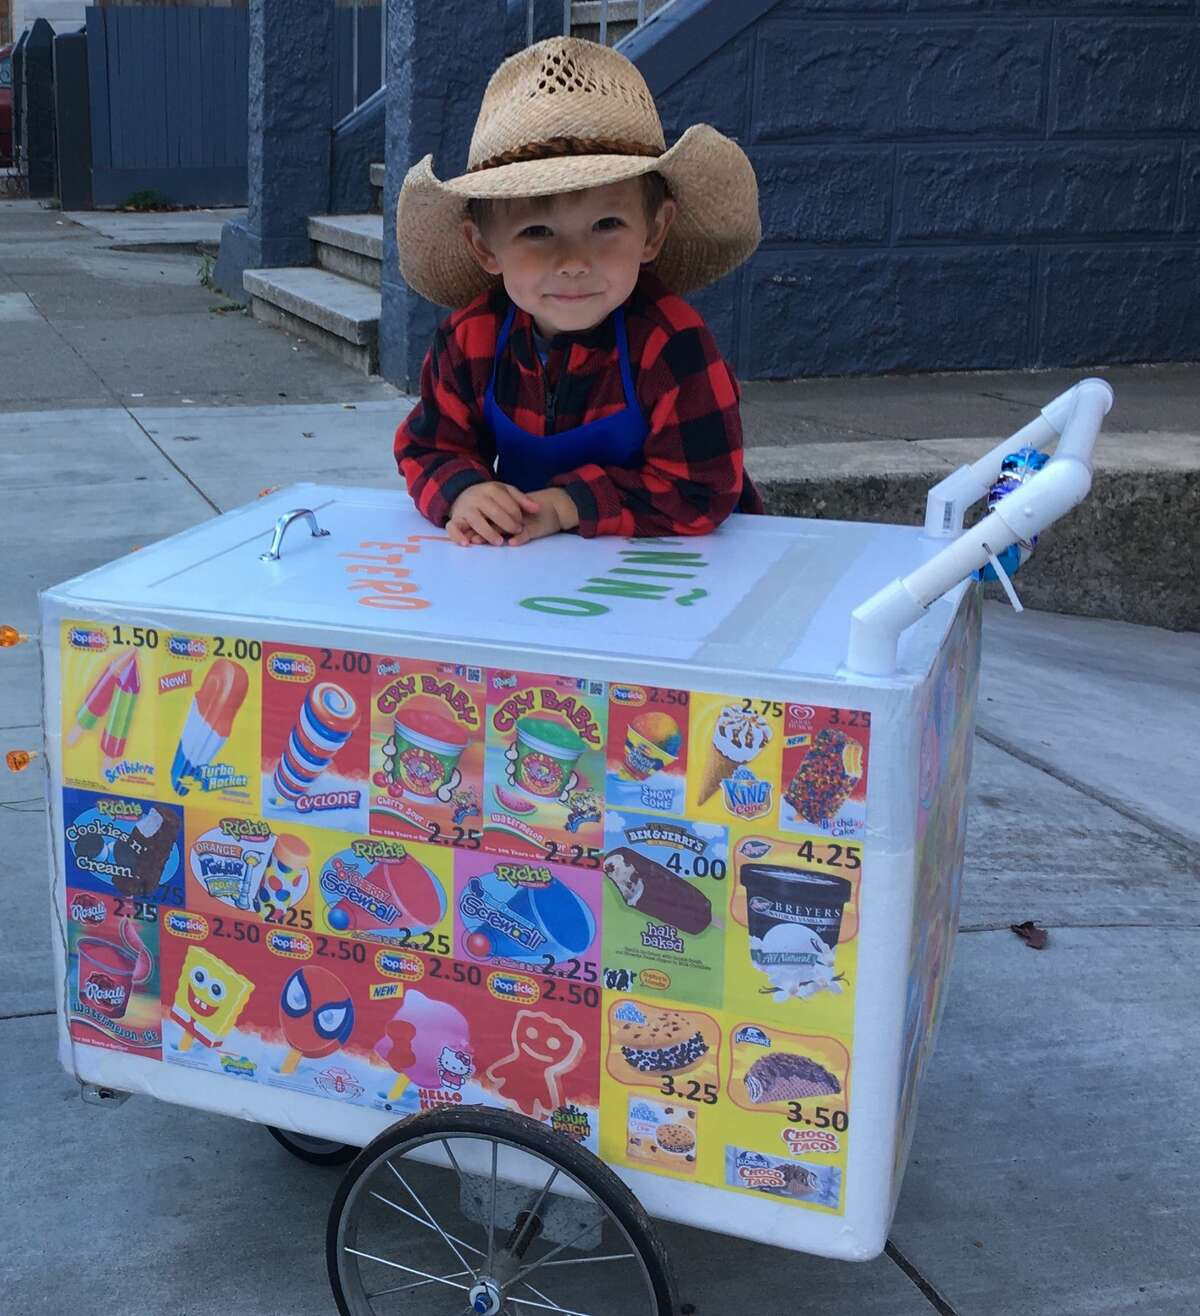 MISSION ICE CREAM MAN: Some excellent execution here. Judy and Murray Haworth write: